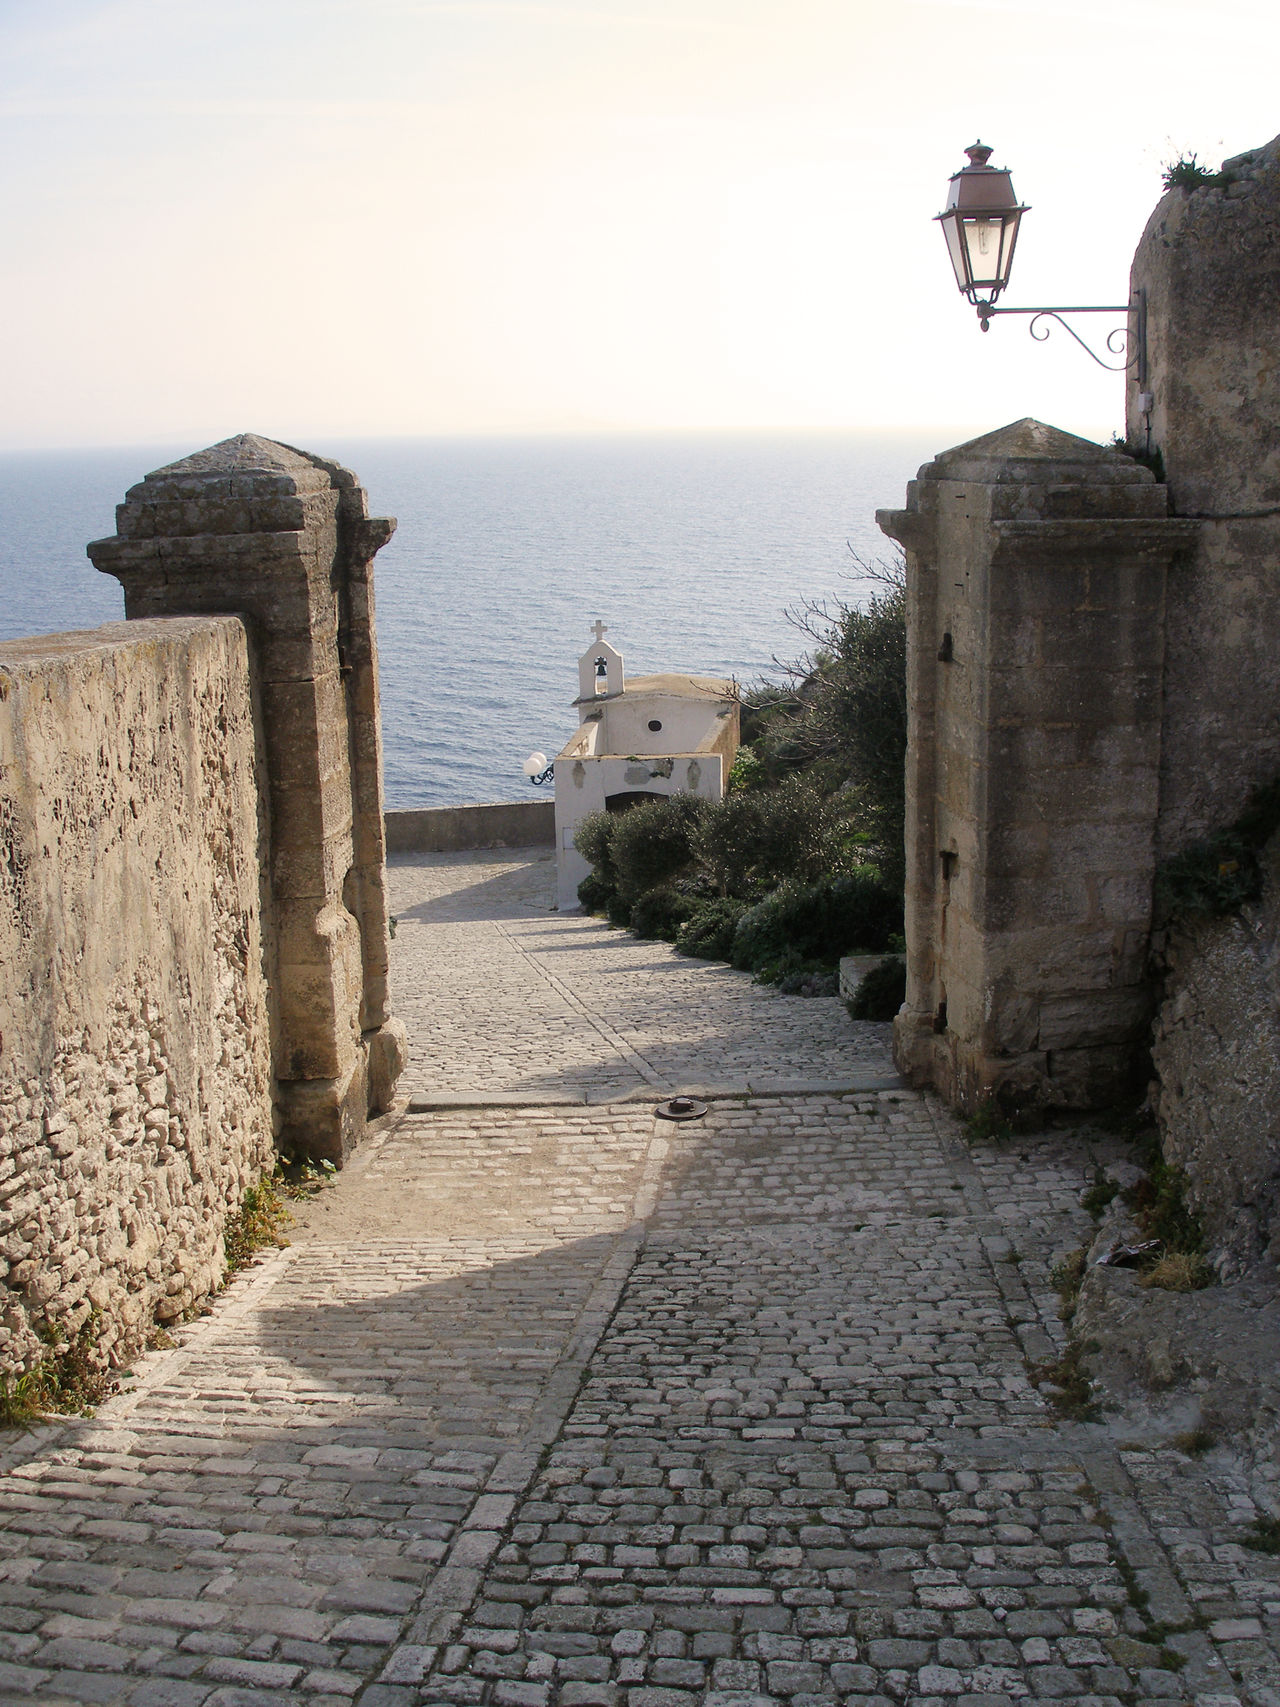 Tiny little church in Bonifacio, Corsica Architecture Bonifacio Building Exterior Built Structure Chapel Church City Walls Corsica Day Footpath France Gate Horizon Over Water Mediterranean  Nature No People Outdoors Path Perspective Sea Sky Sunny Day Sunshine Walkway Water